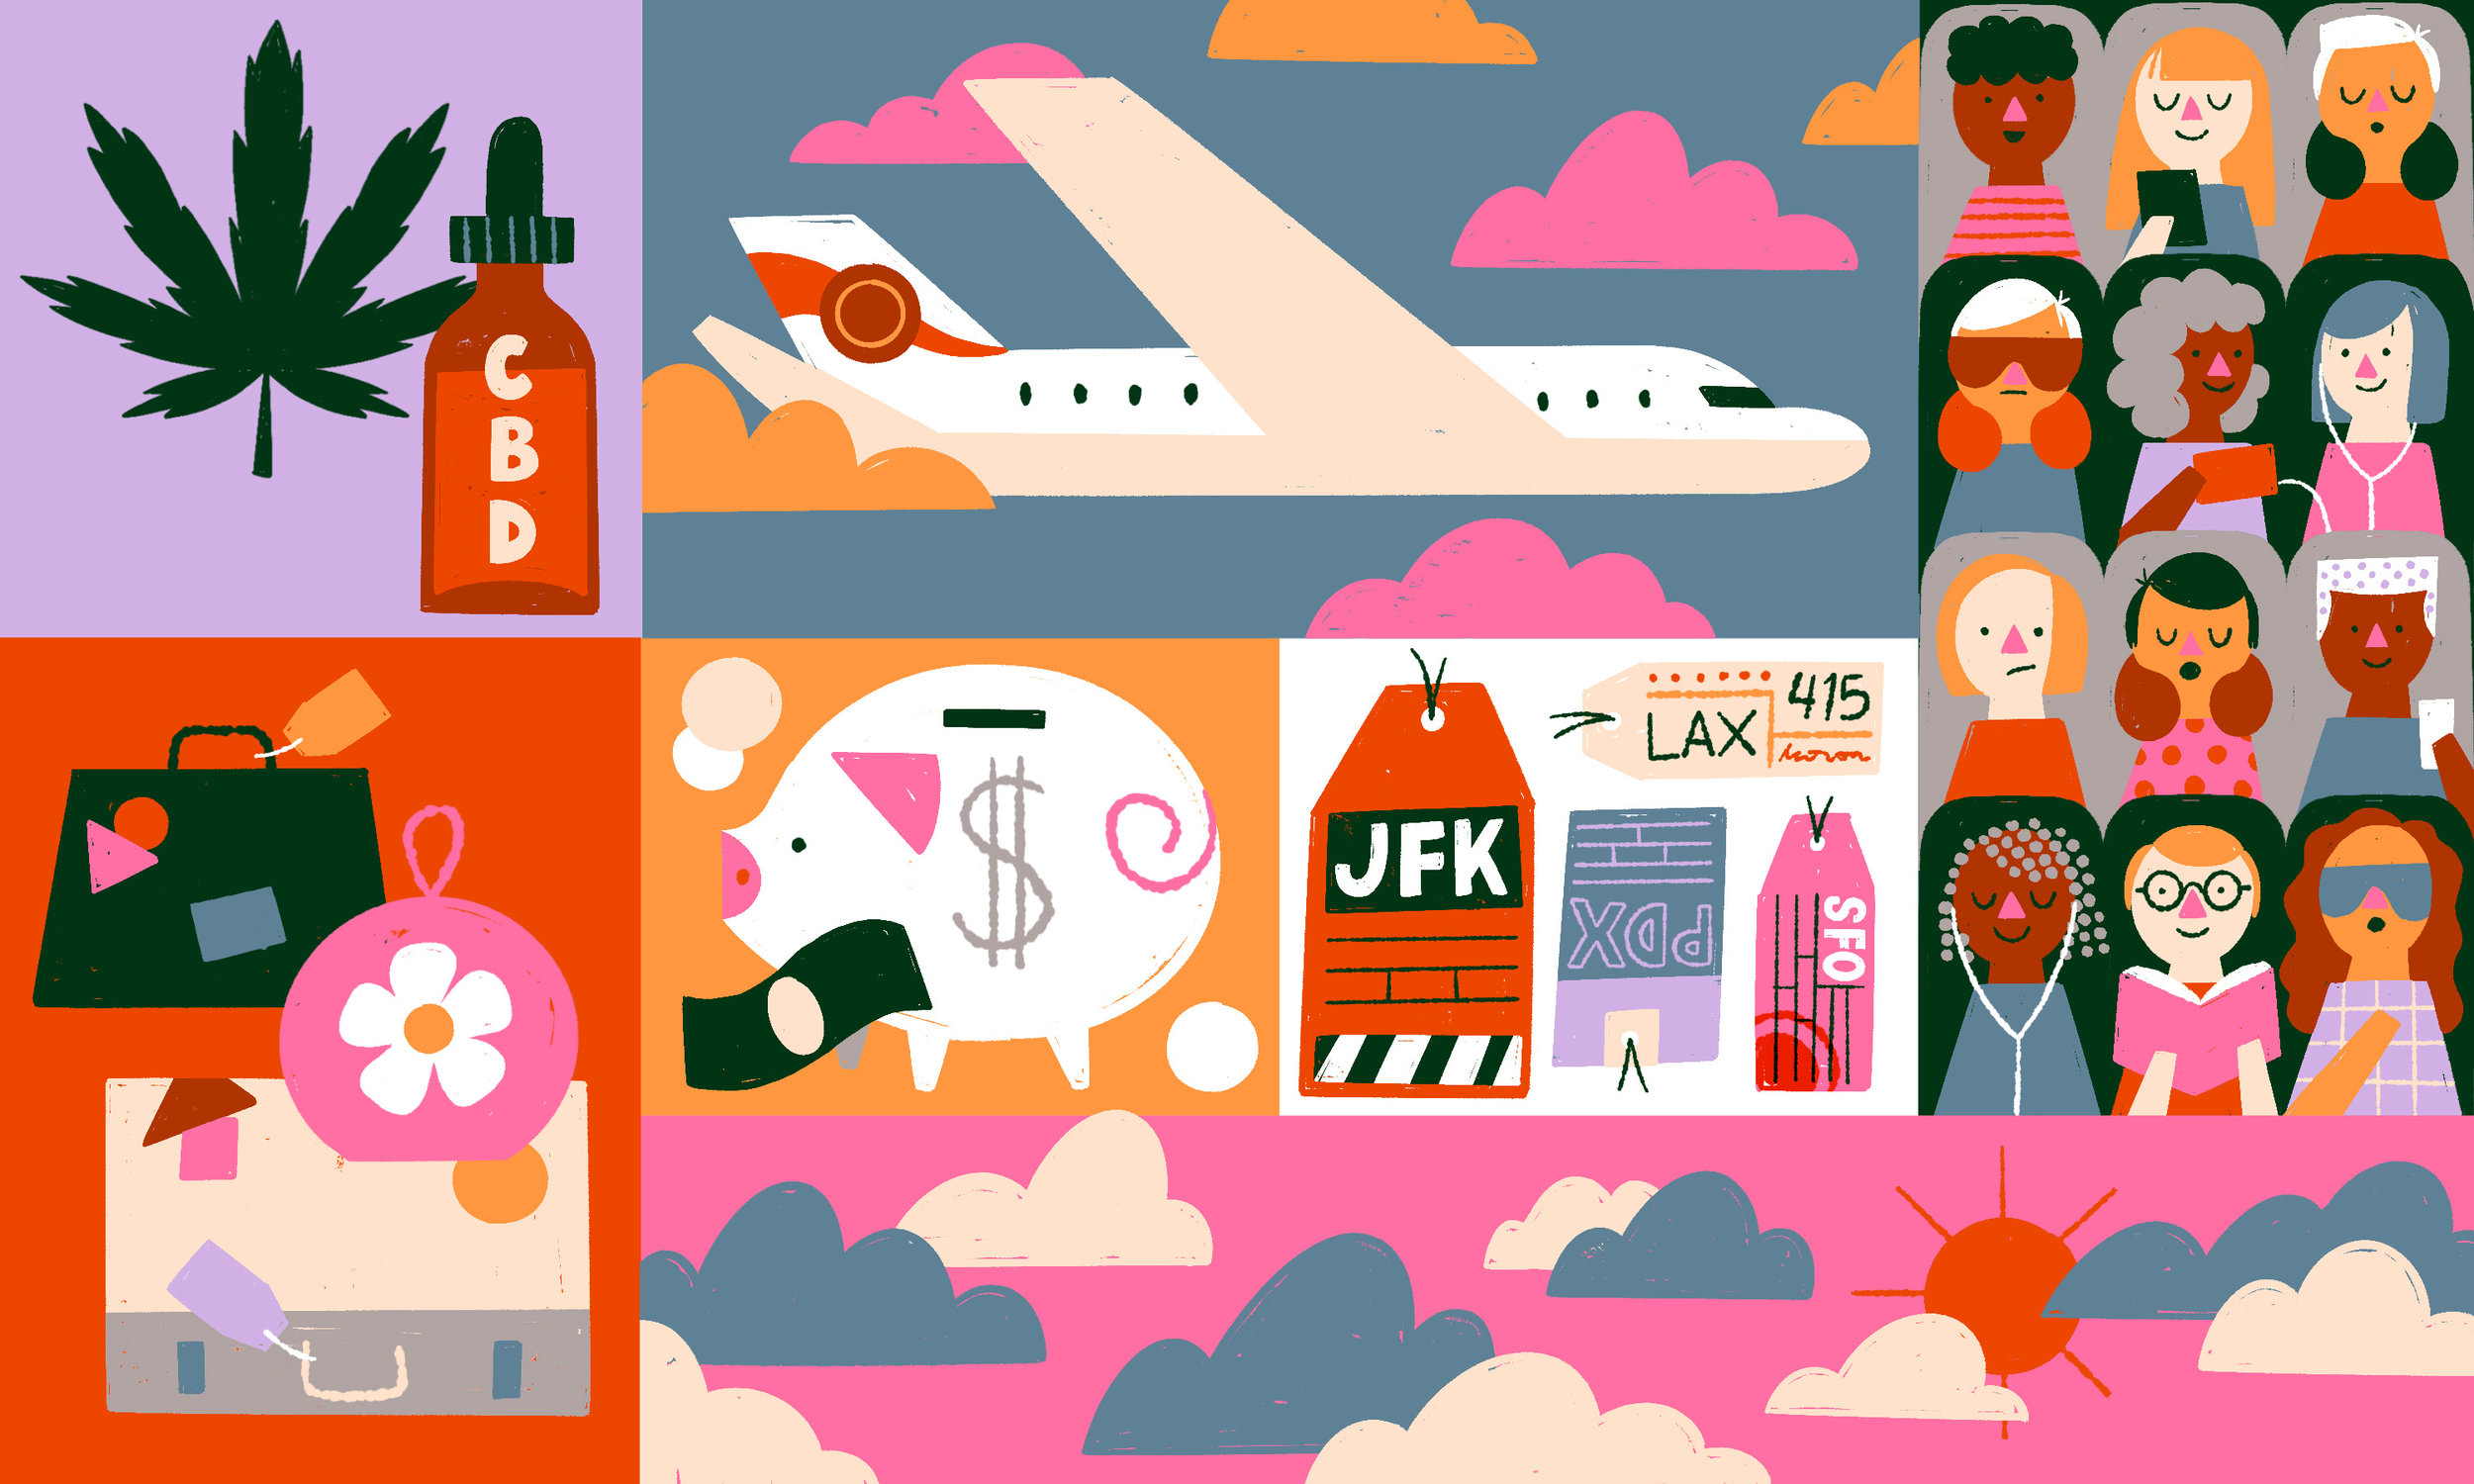 Flying this summer? Pack a backup plan, and breathe deeply if that's possible